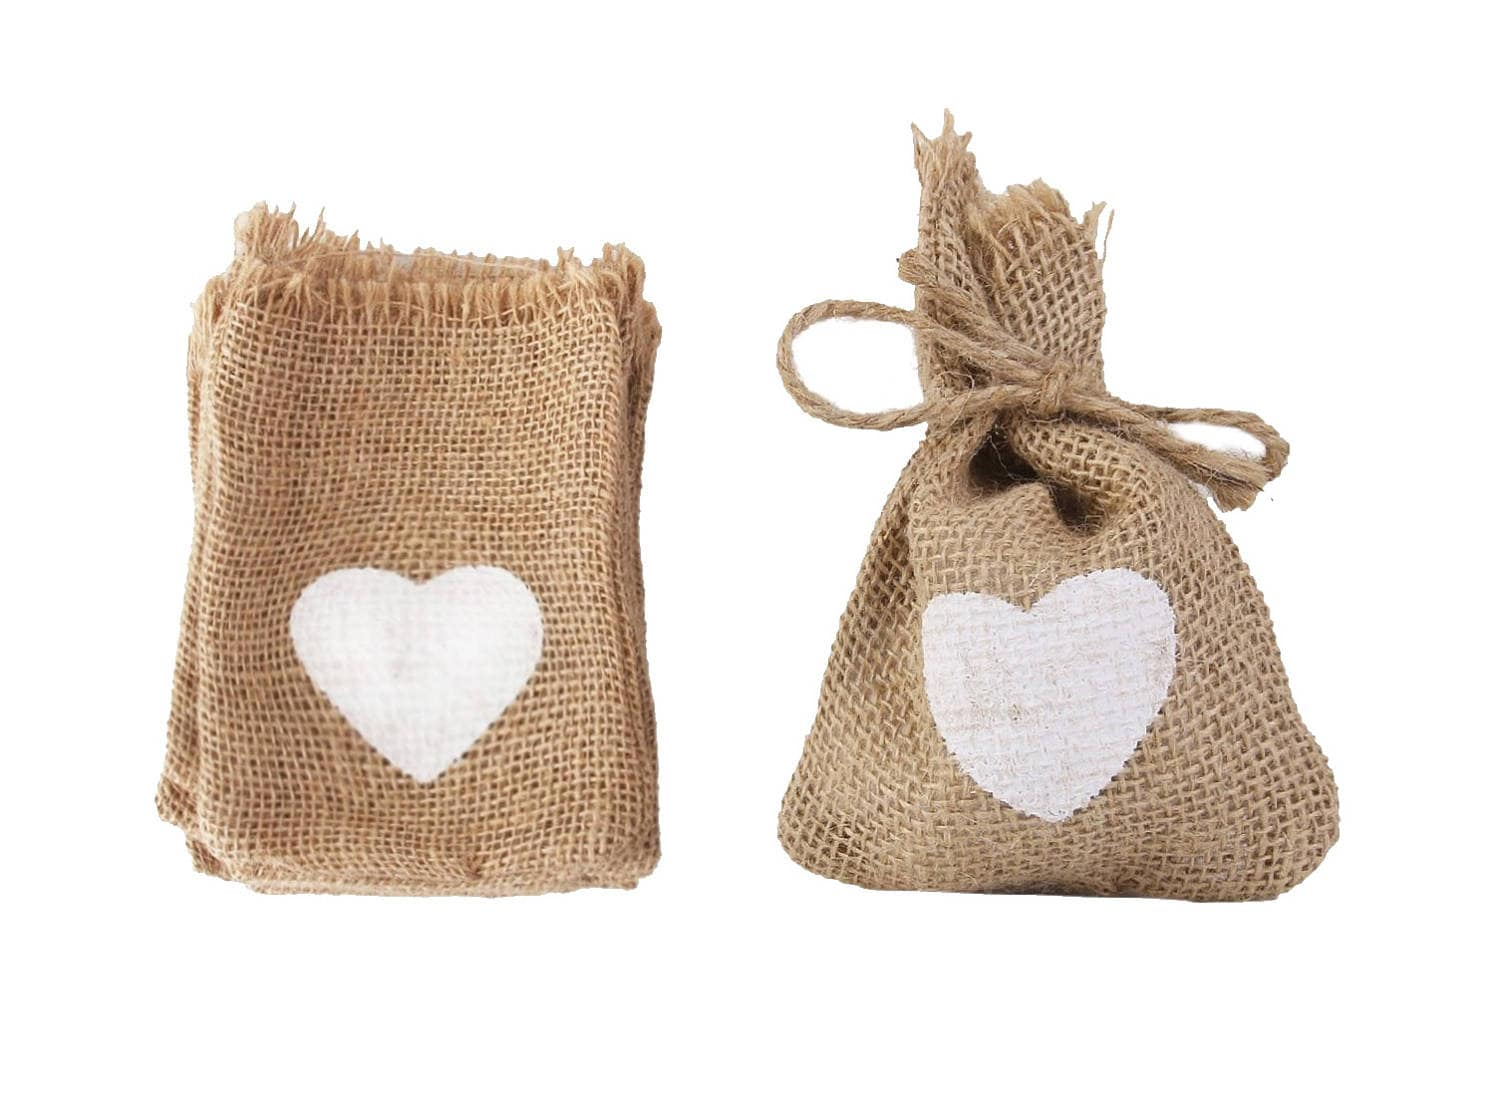 100 HESSIAN FAVOR BAGS, wedding favor bags, burlap bags, wedding ...